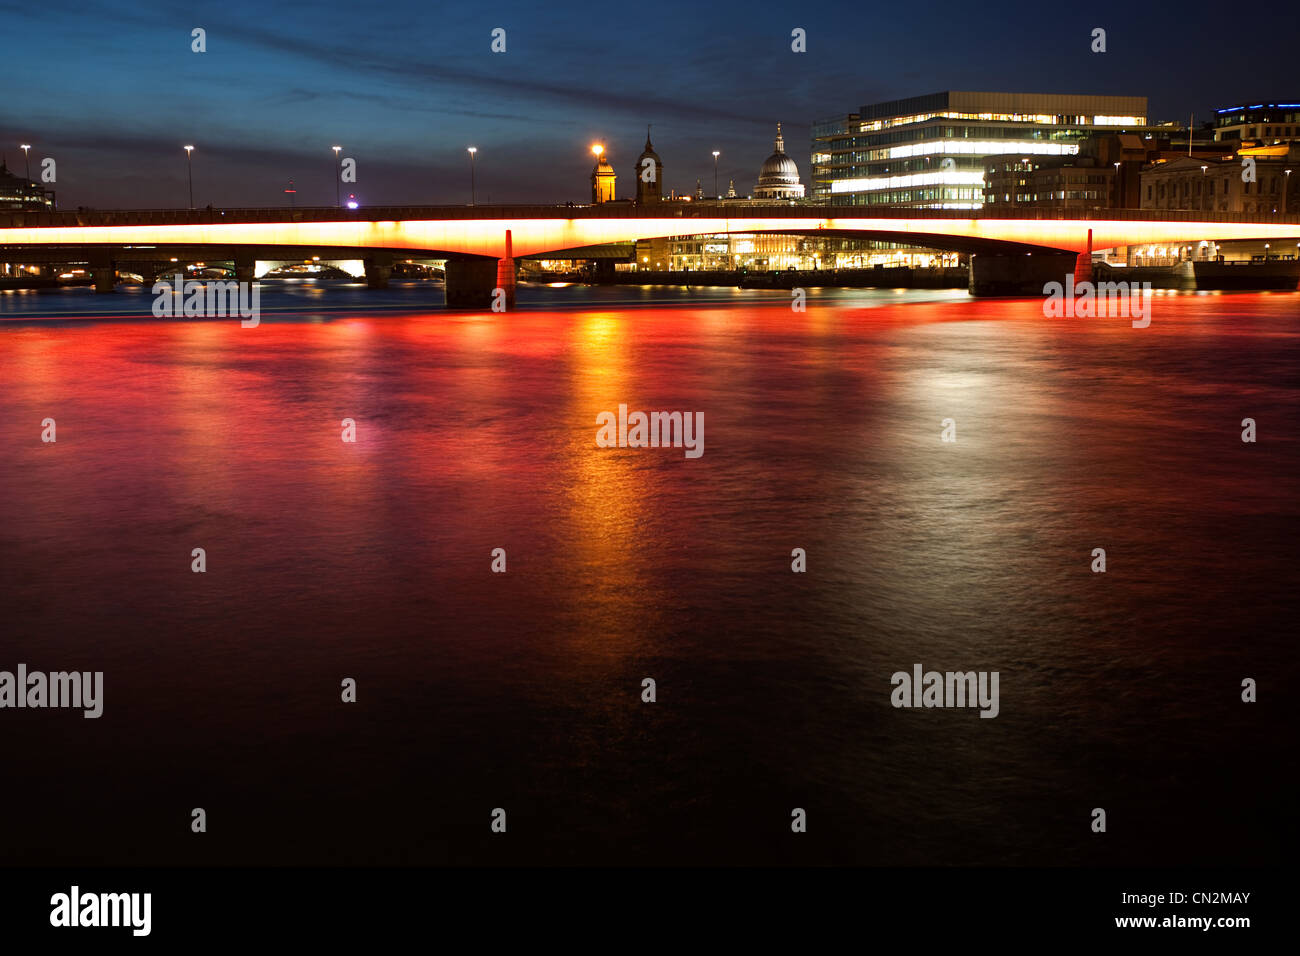 London Bridge, London, UK - Stock Image